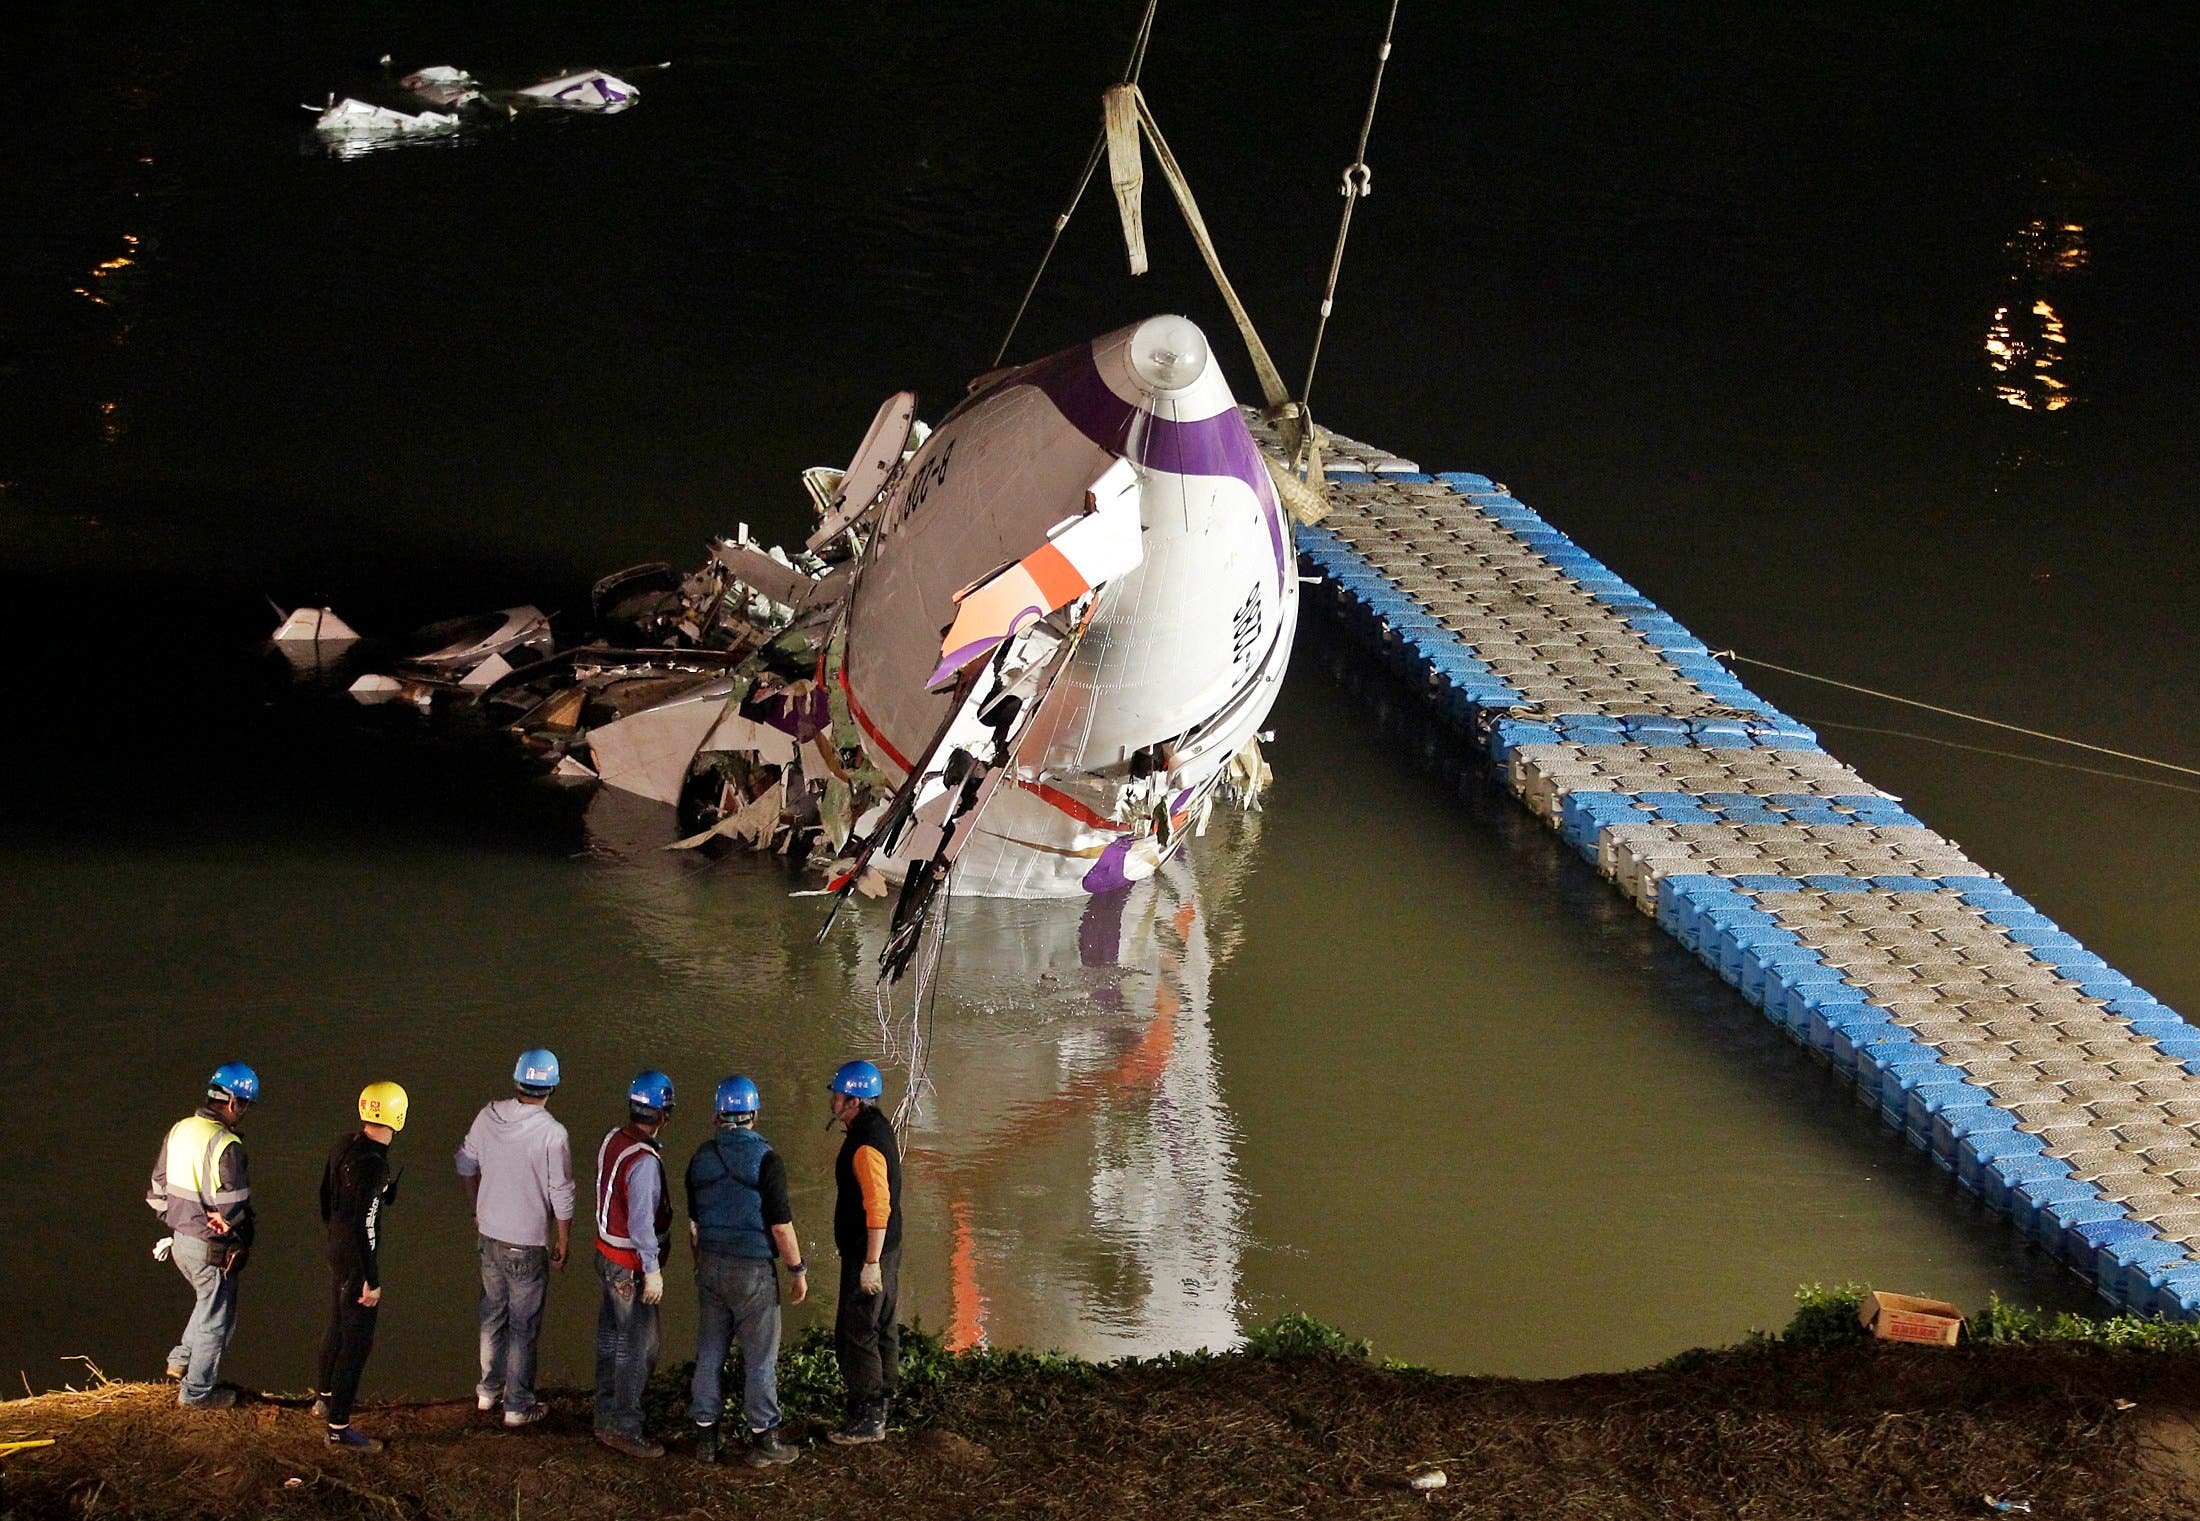 Cranes lift the crashed plane from a Taiwan river (Reuters)